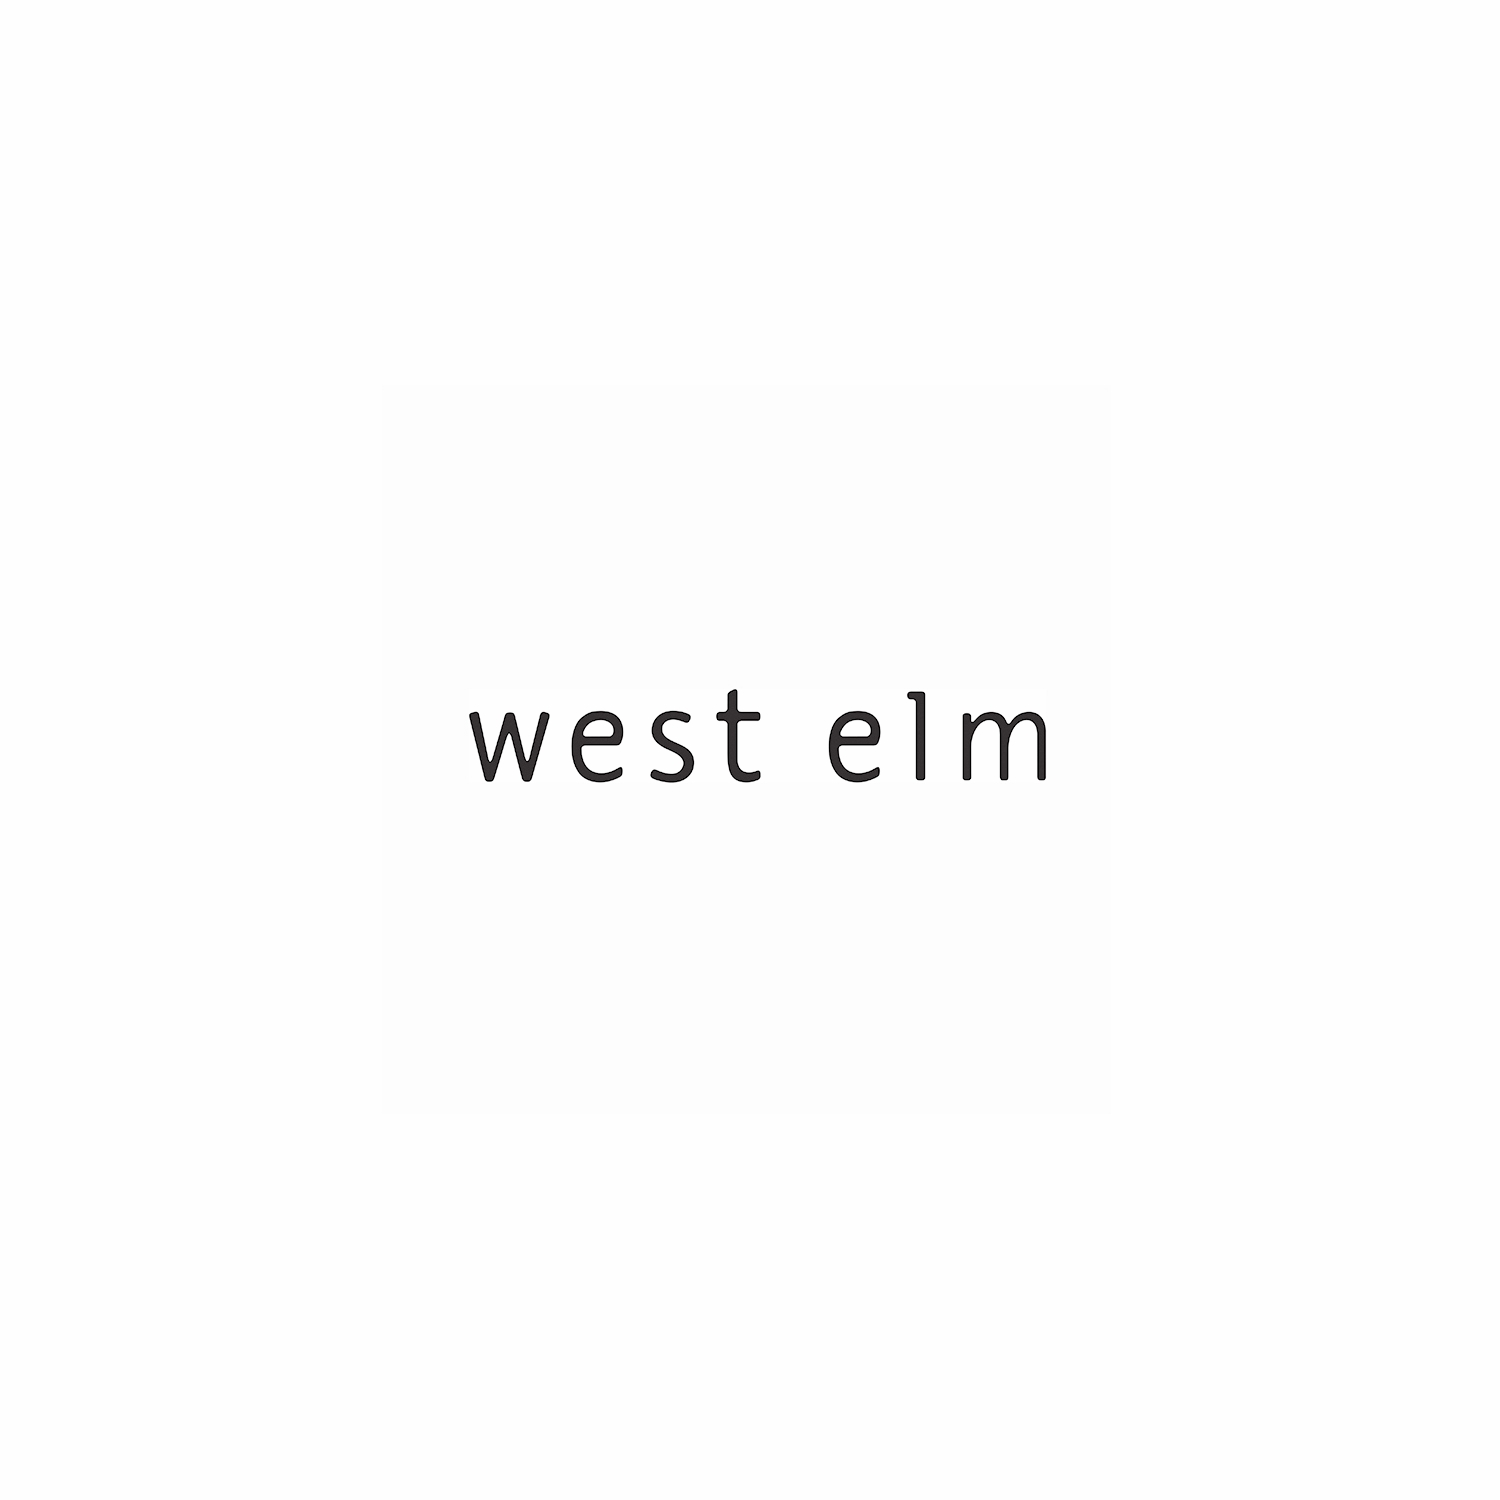 West Elm - I love their modern and geometric printed linens. They also do neutrals really well.